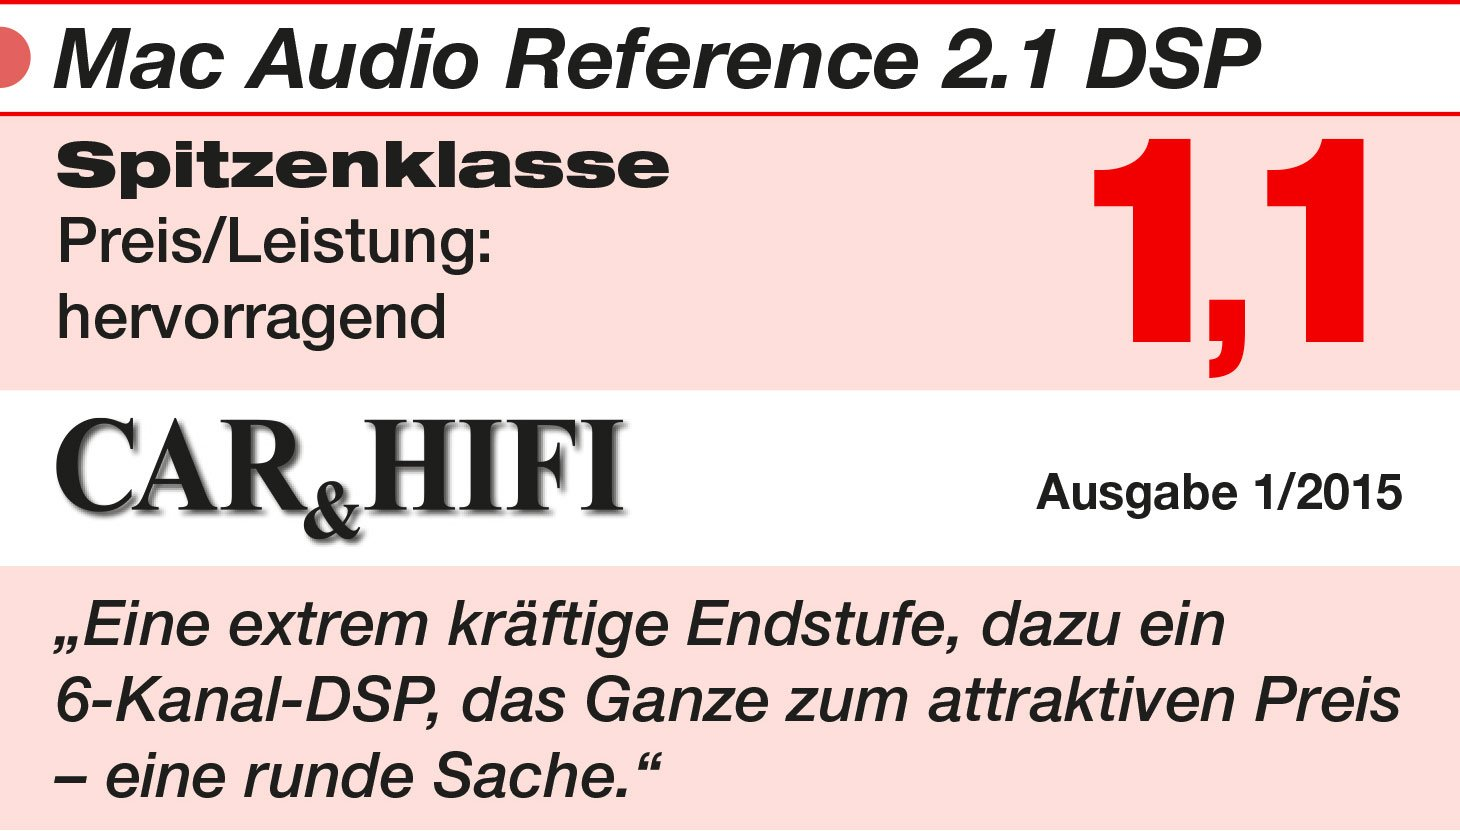 1500 Watt Mac Audio Reference 2.1 DSP-Stereo Endstufe mit High-End-Sound-Quality